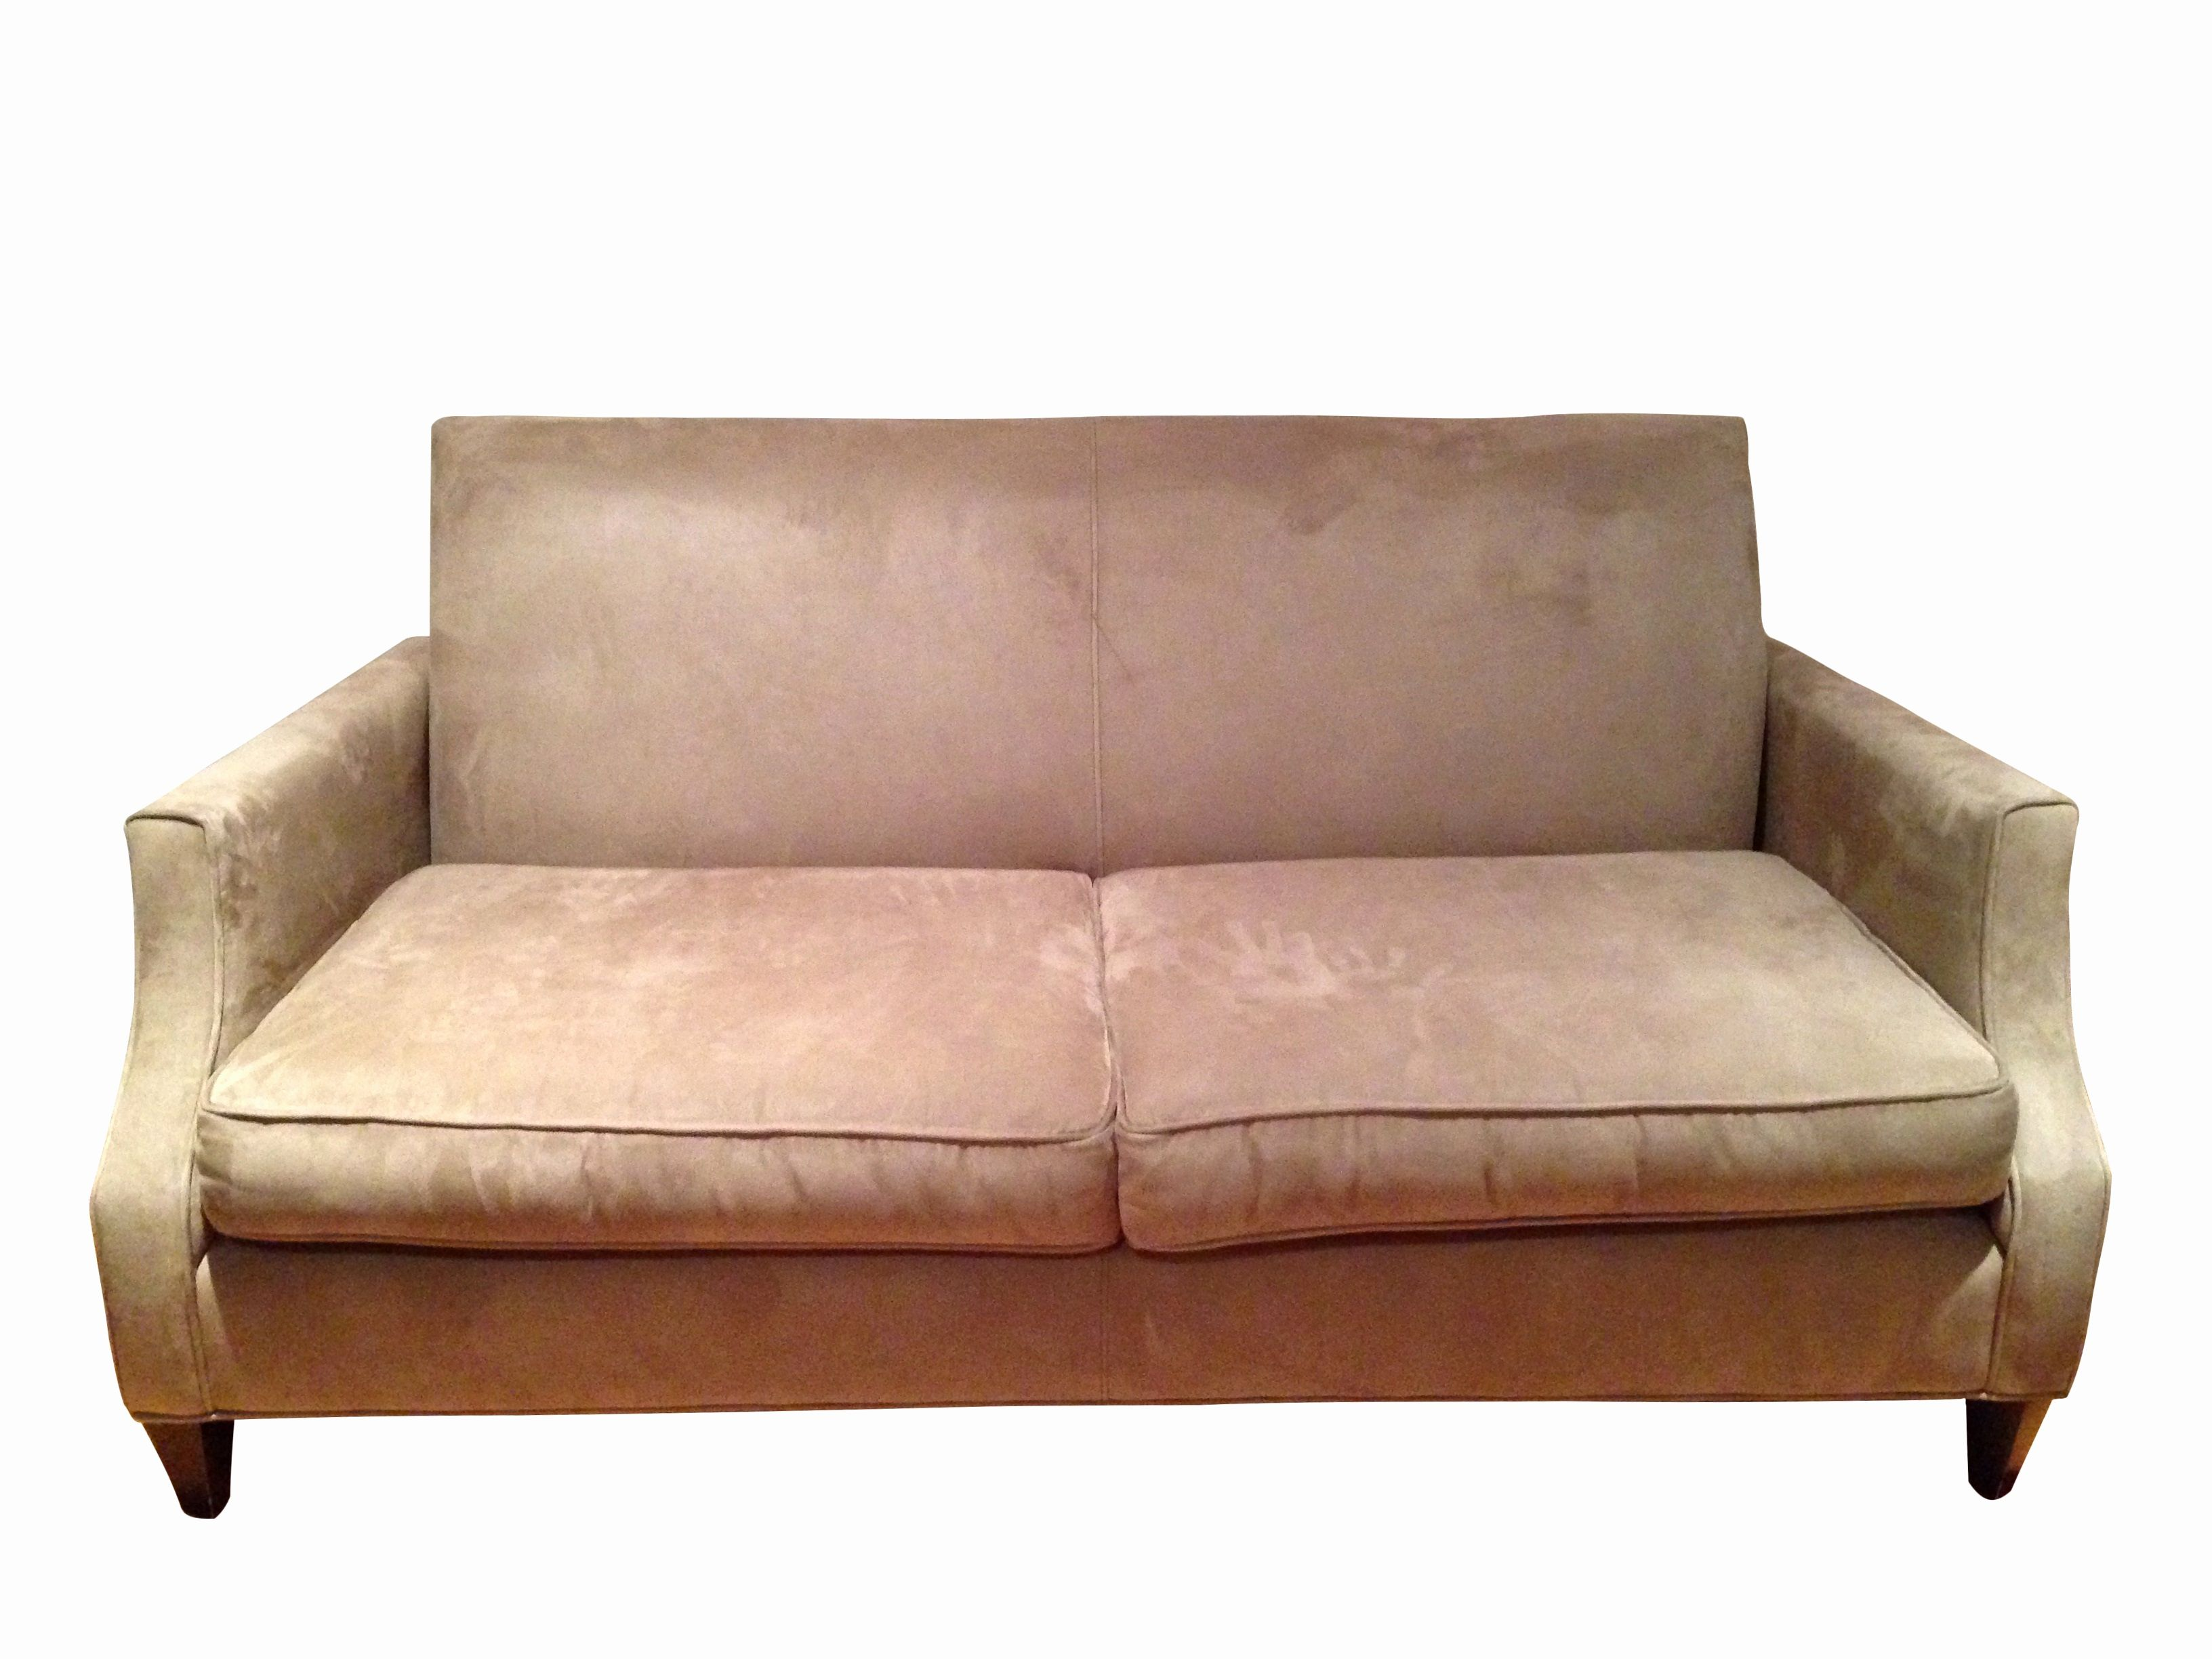 ercol diego urban style review loveseat home bryan bedrooms pepper vanity linen bluebell folding sleeper compact interiors stunning san arms outstanding near me leather convertible seat furniture design diy sofa love outfitters sink bayonet amazing craftsman wood dream with